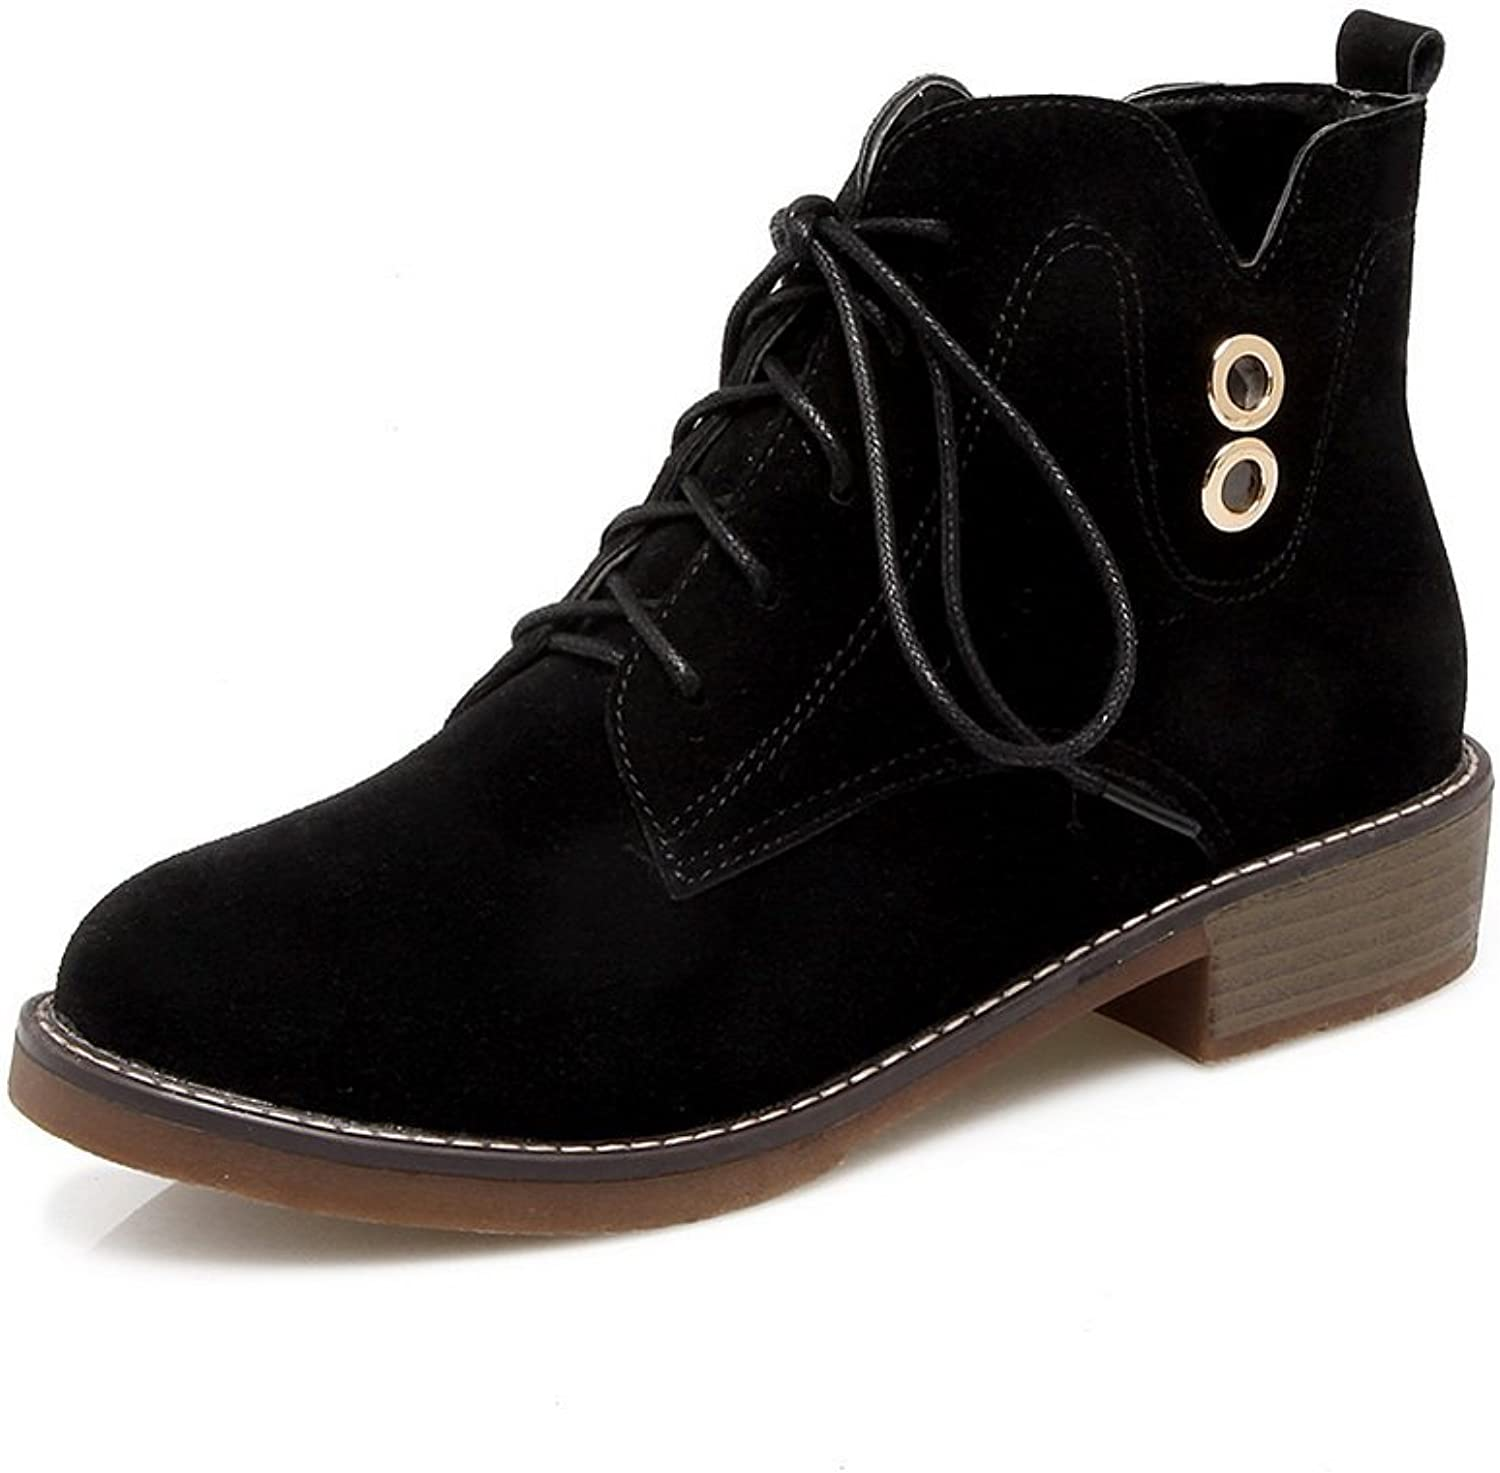 1TO9 Womens Boots Closed-Toe Lace-Up Adjustable-Strap Kitten-Heel Warm Lining Waterproof Soft Ground Nubuck Dress Urethane Boots MNS02630